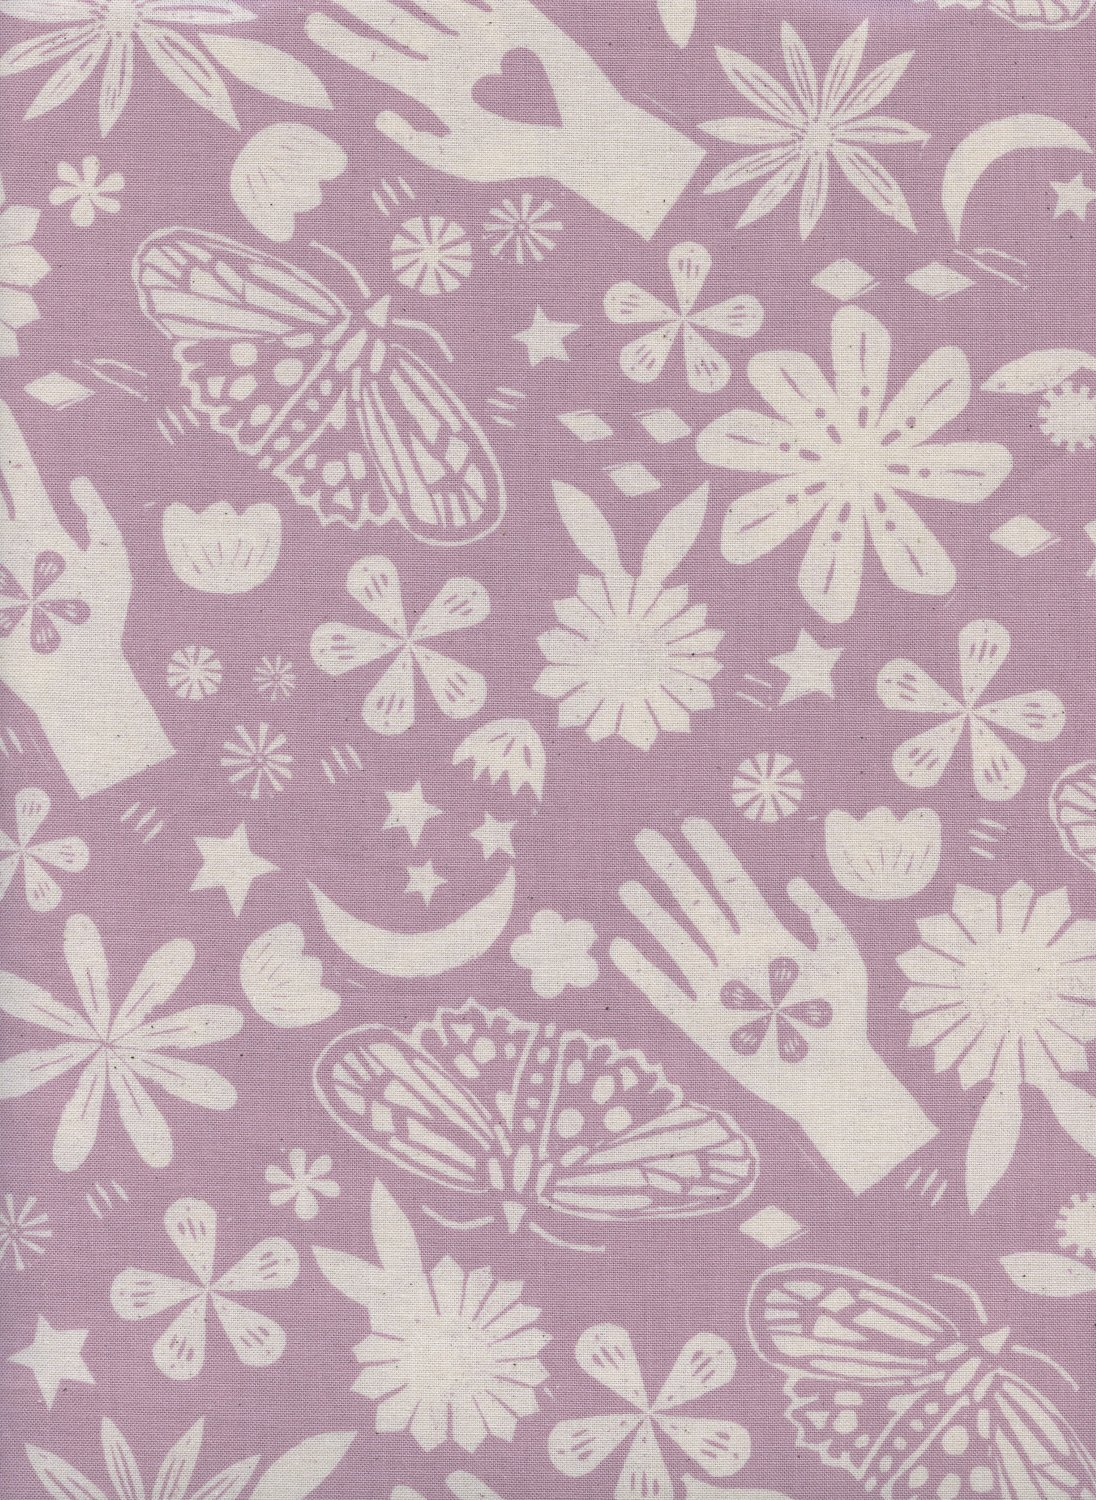 Dream in Lilac Unbleached by Alexia Marcelle Abegg from the Moonrise collection for Cotton and Steel #A4067002